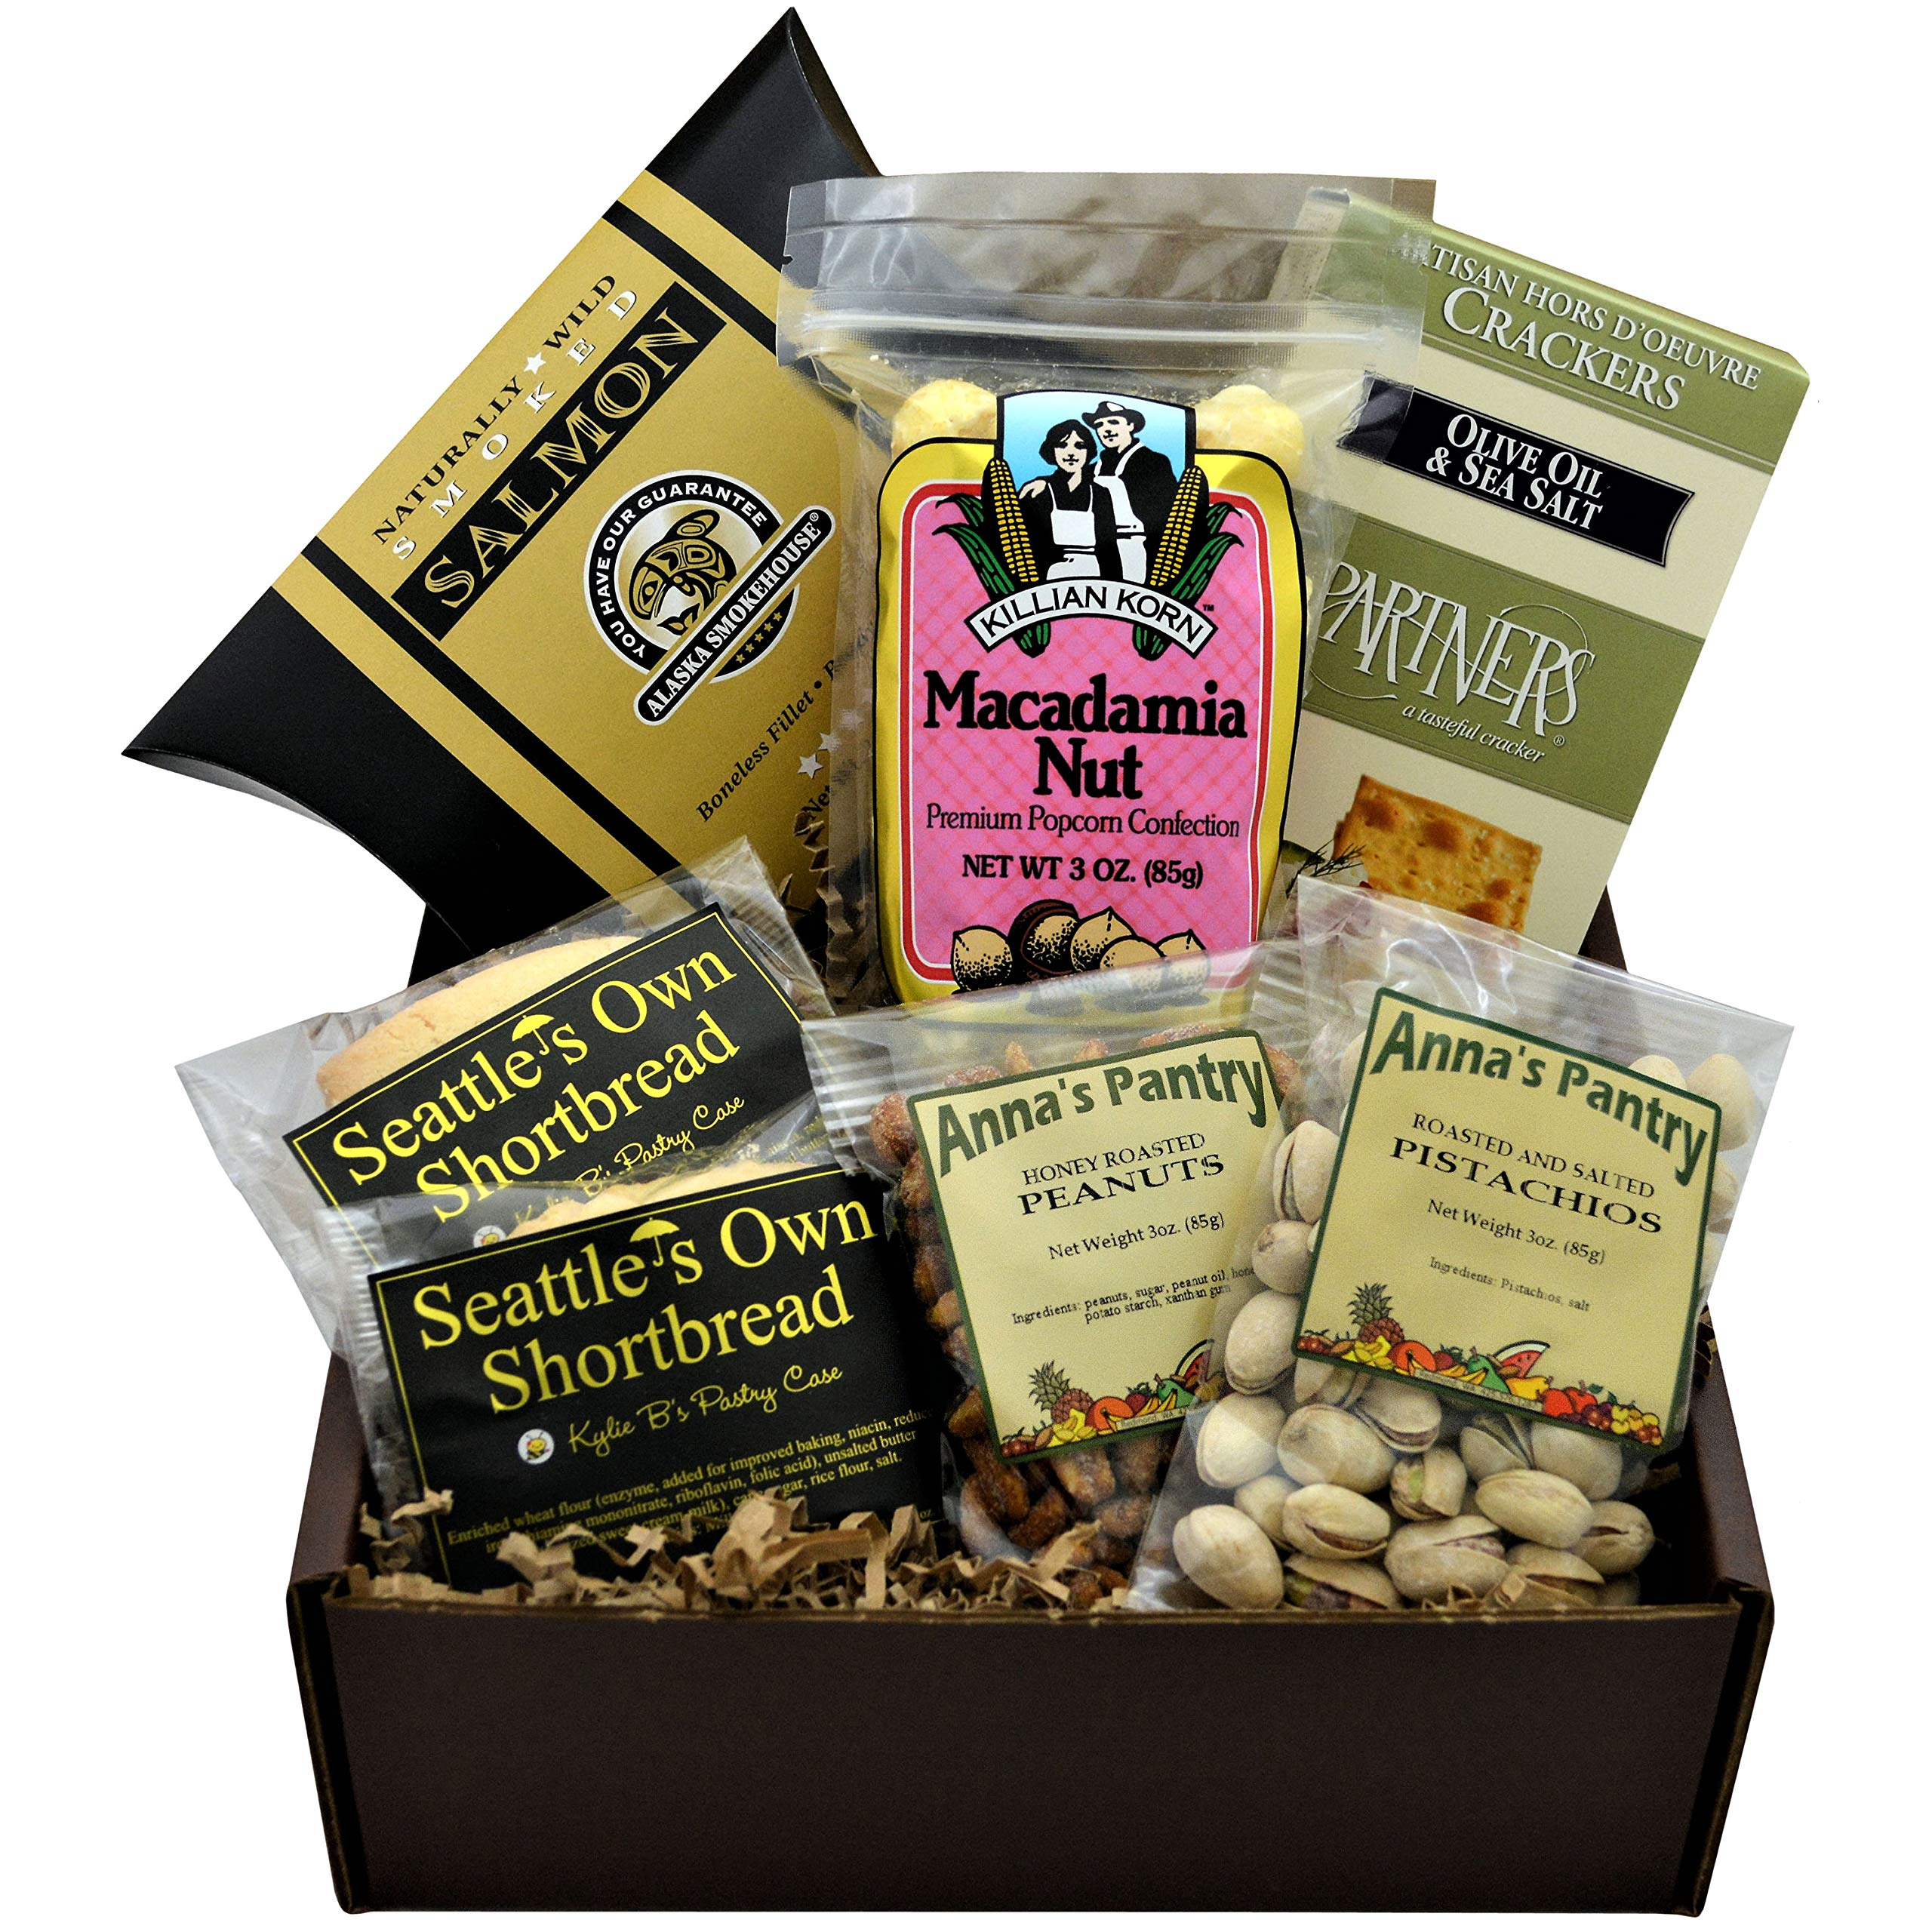 Sweet and Savory Gift Box featuring Smoked Salmon, Crackers, Pistachios, Honey Roasted Peanuts, Shortbread Cookies, and Macadamia Nut Popcorn